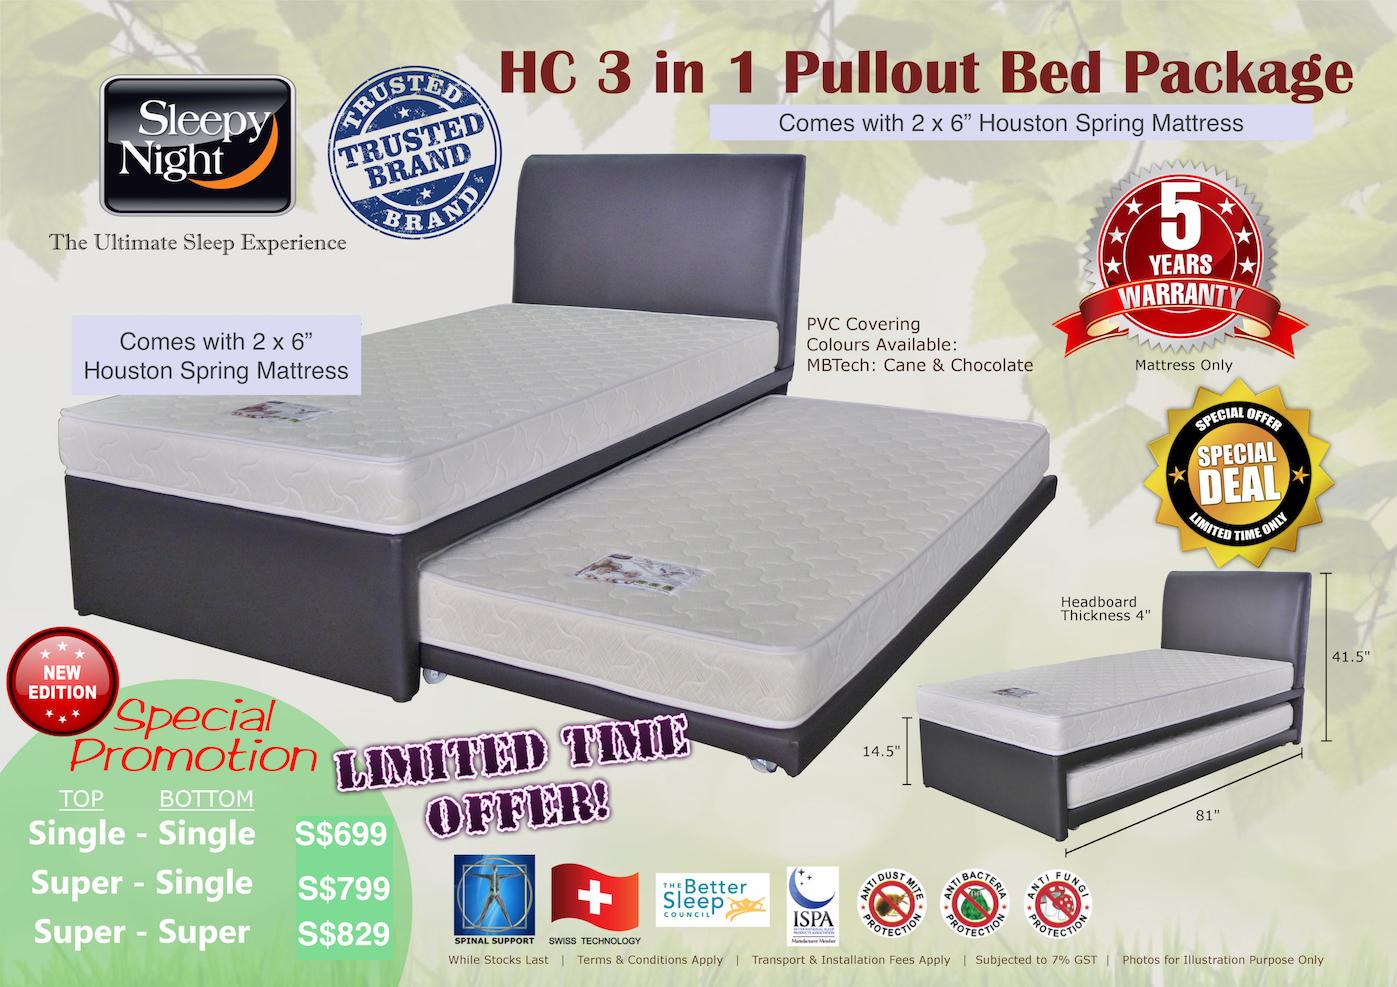 Sleepy Night 3 in 1 Pullout Bed Package - Single Top/Bottom, Houston 6 (Cane)